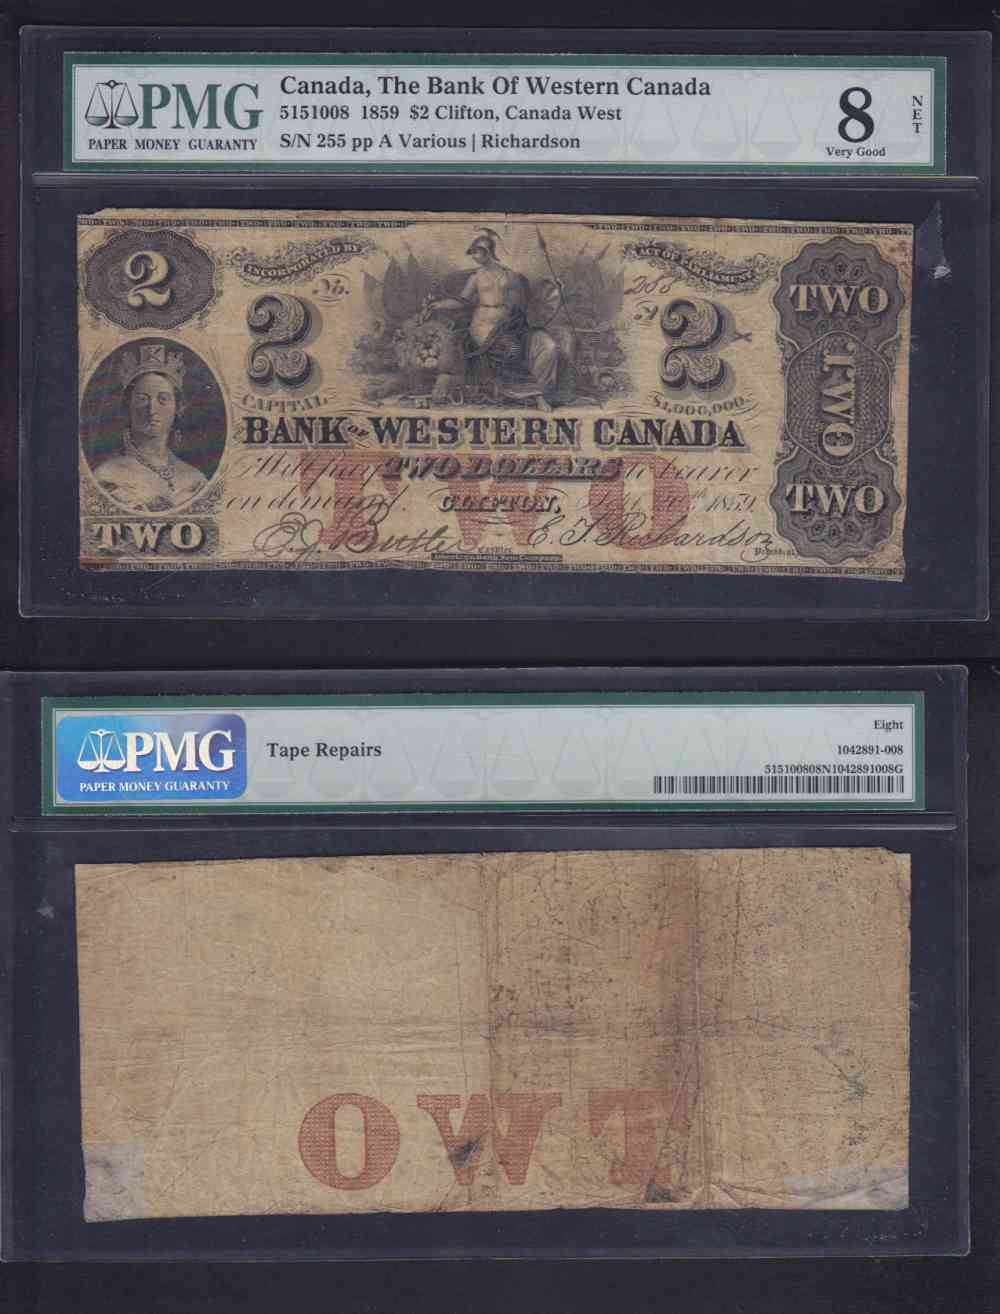 1859 CANADA 2$ DOLLAR BANK OF WESTERN CANADA CHARTERED BANK NOTE photo